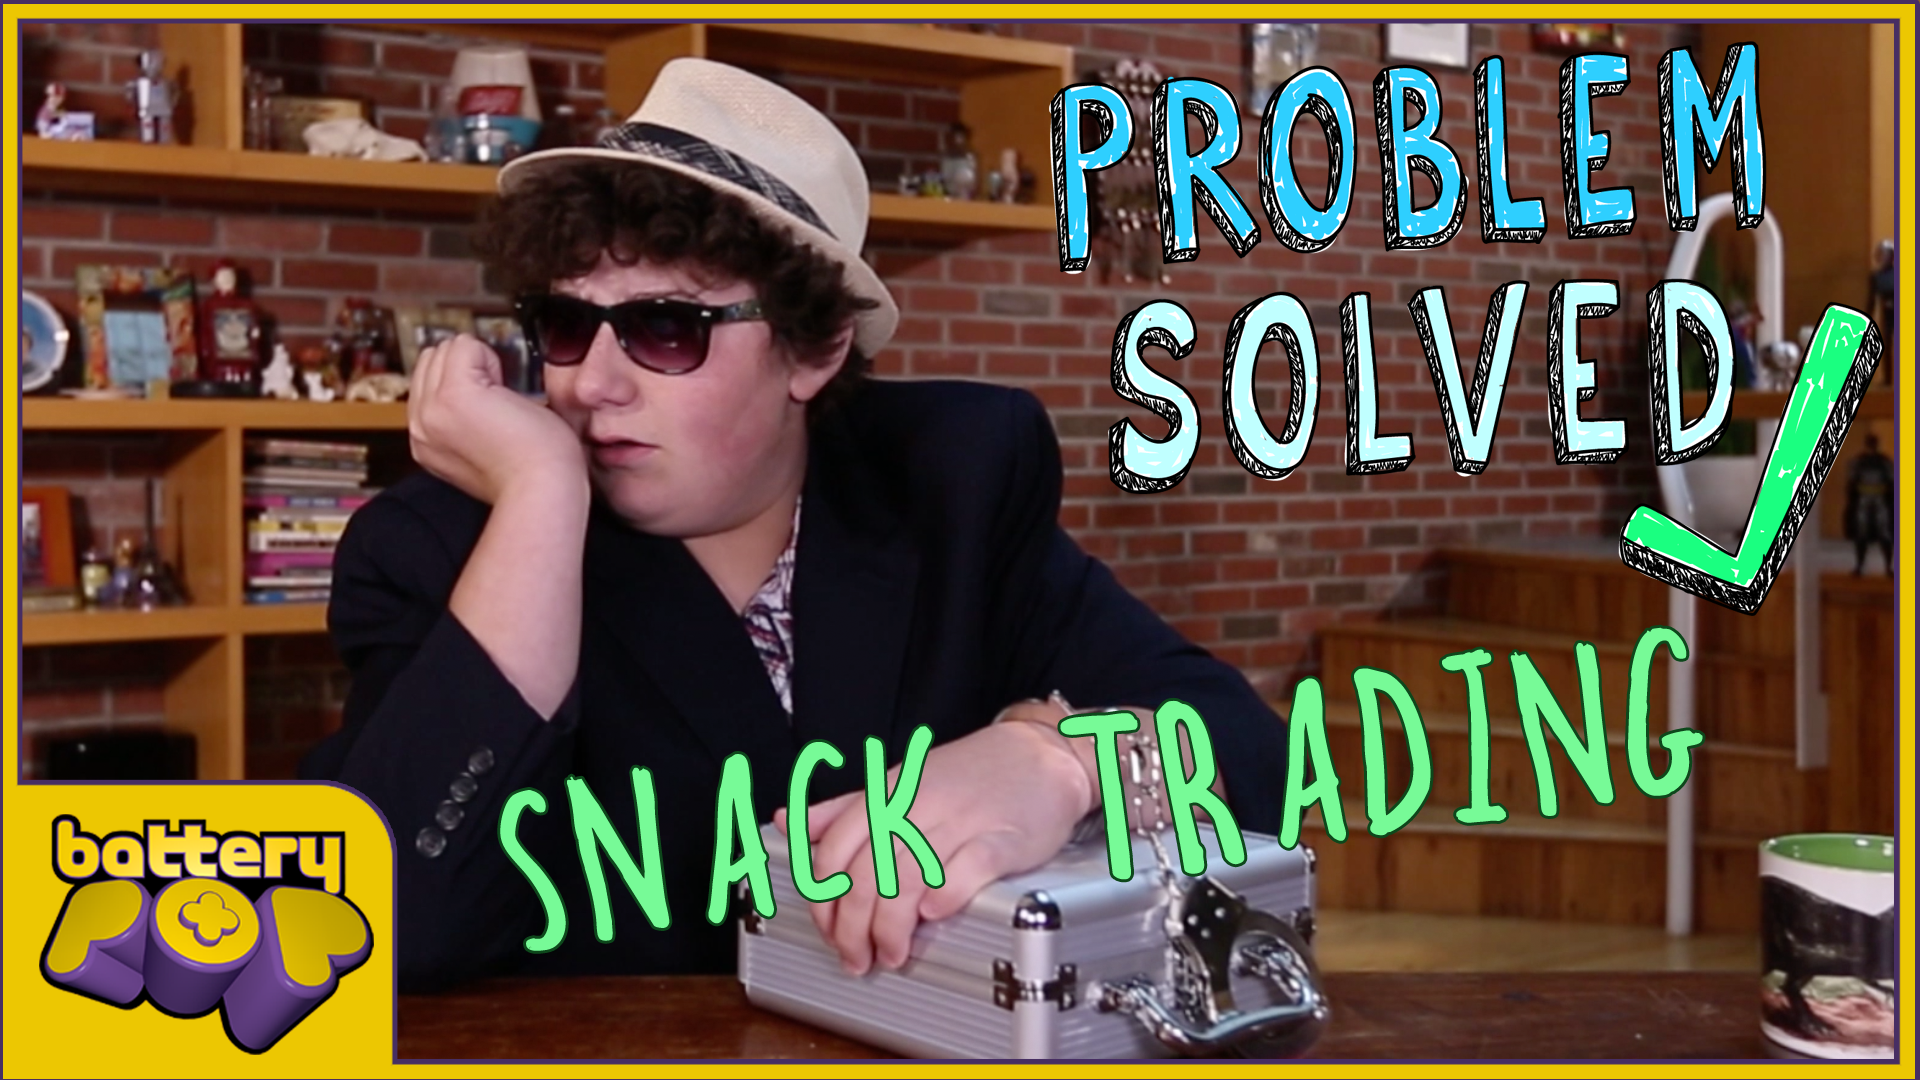 107 snack trade thumb problem solved